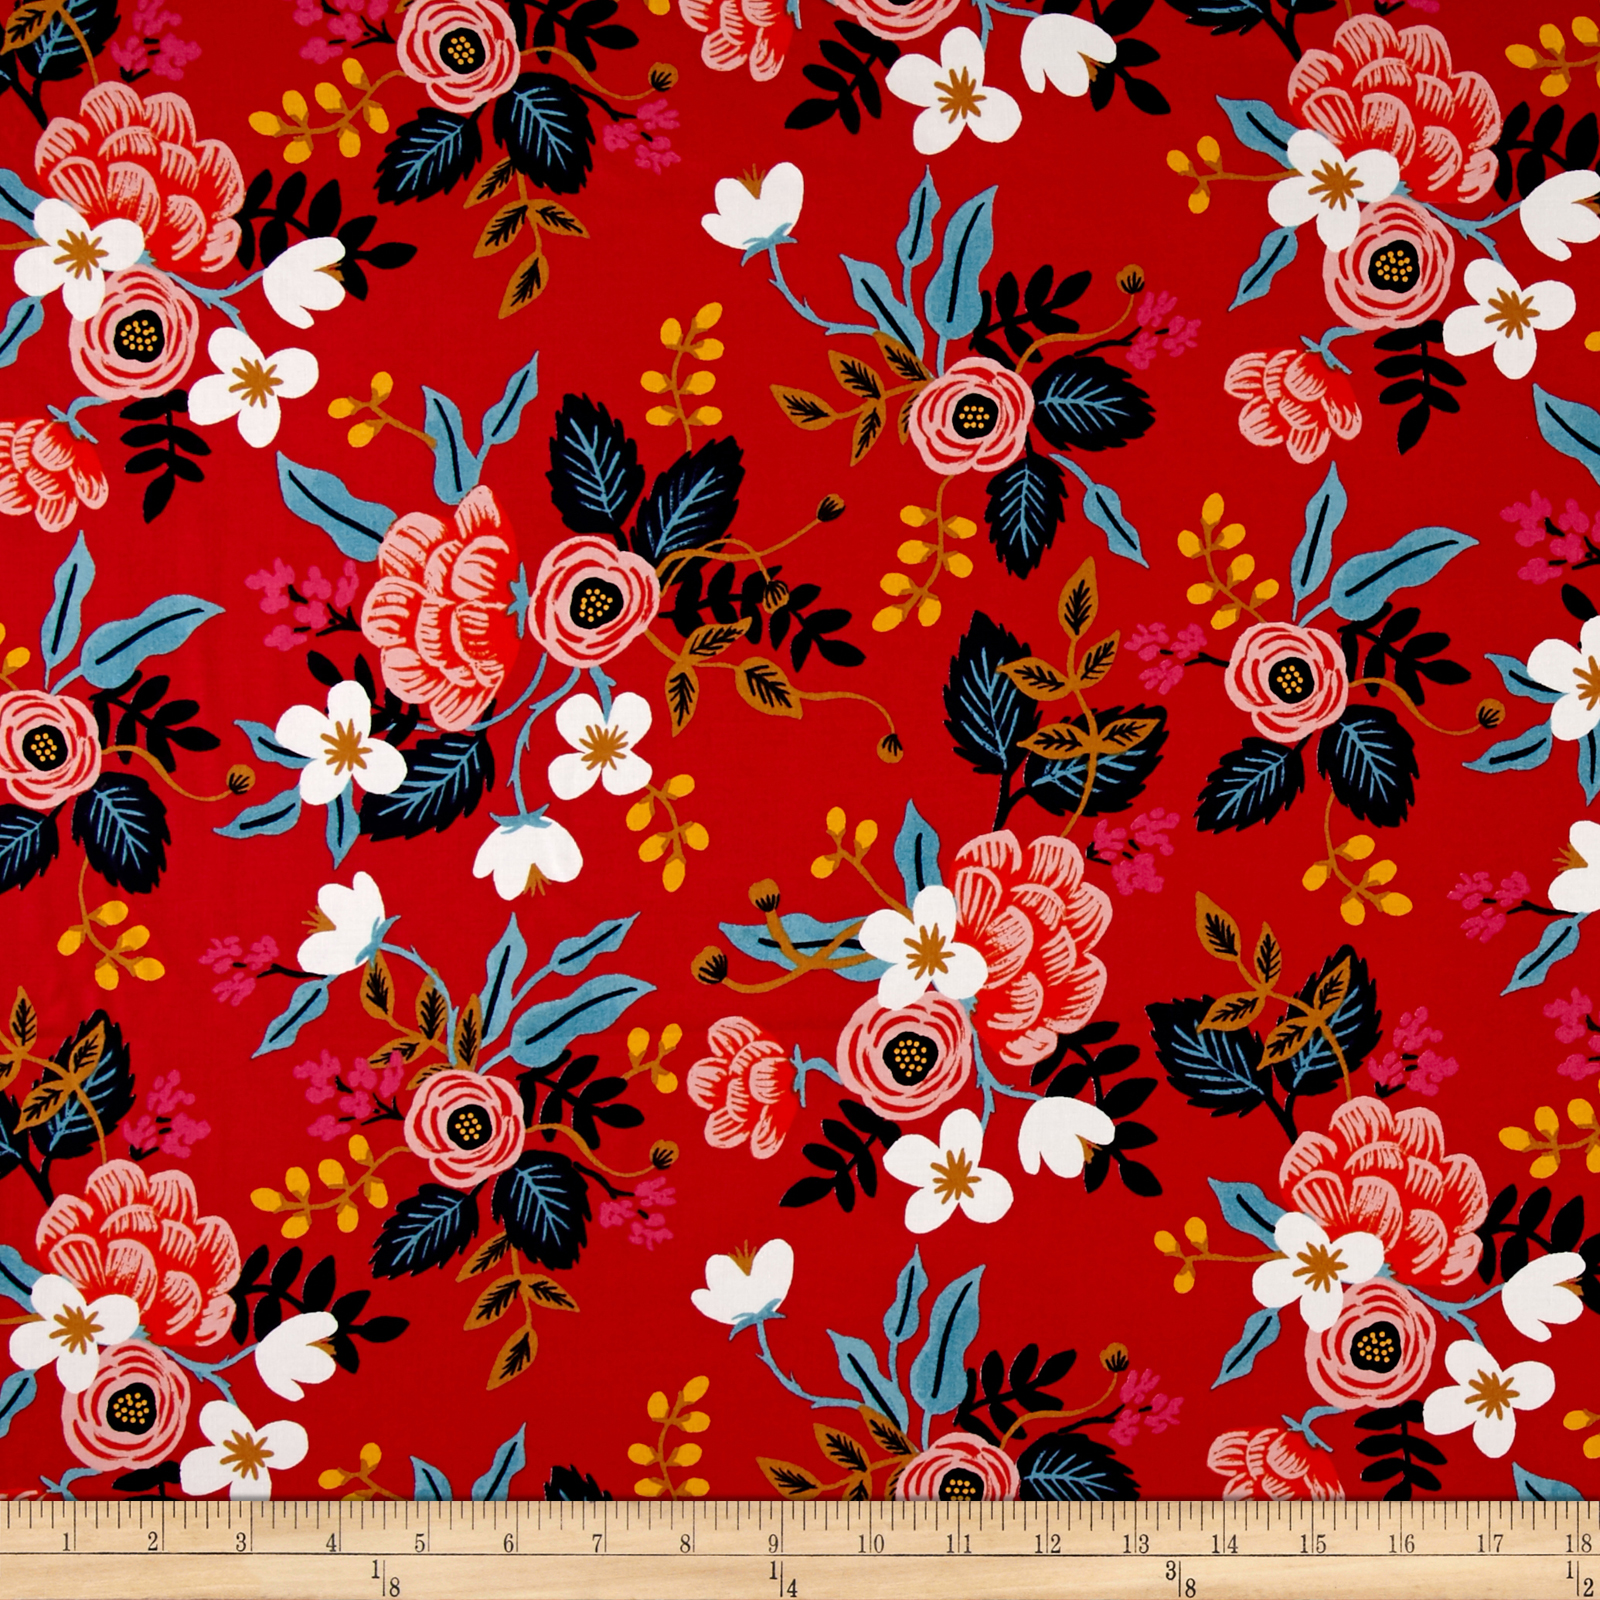 Cotton + Steel Rifle Paper Co. Les Fleurs Rayon Challis Birch Floral Enamel Fabric by Cotton & Steel in USA